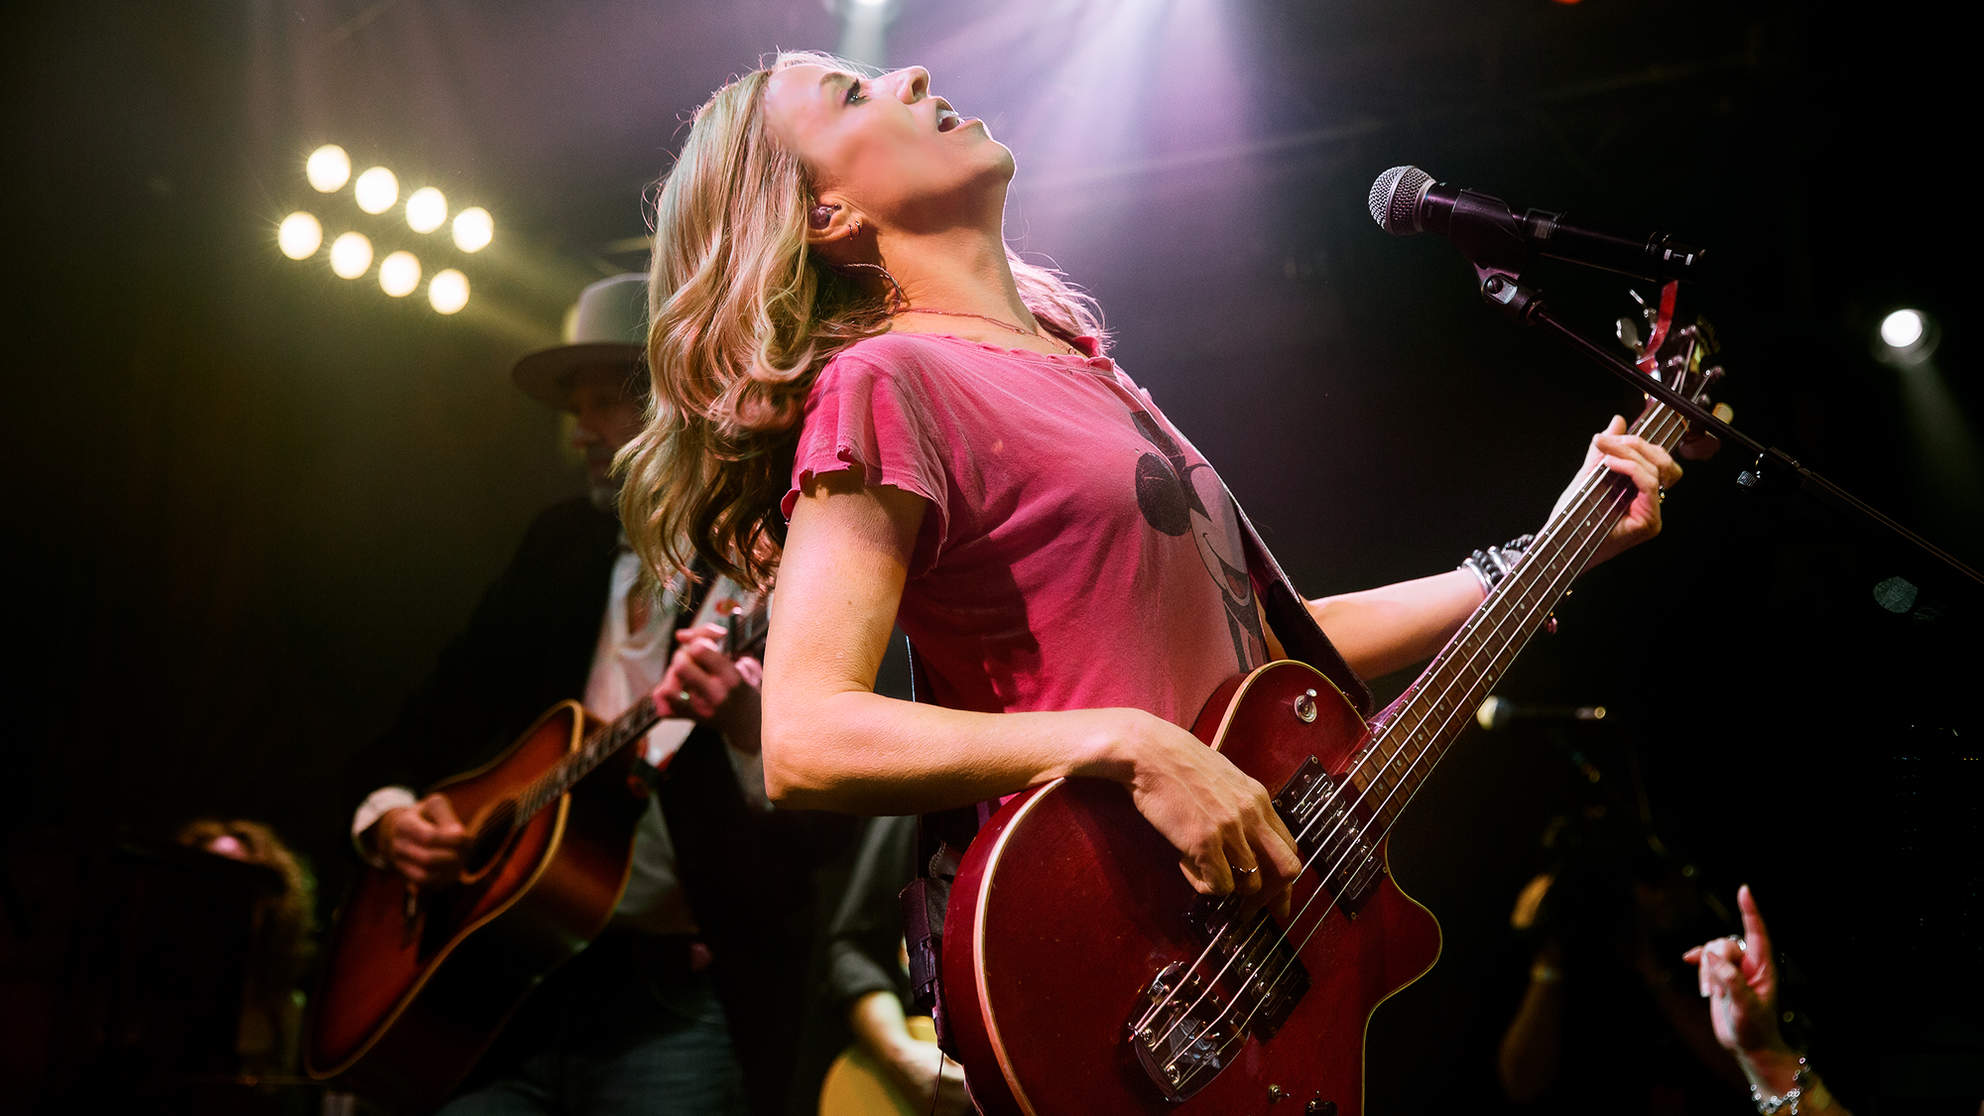 Sheryl Crow on the Simple Change That Transformed Her Life